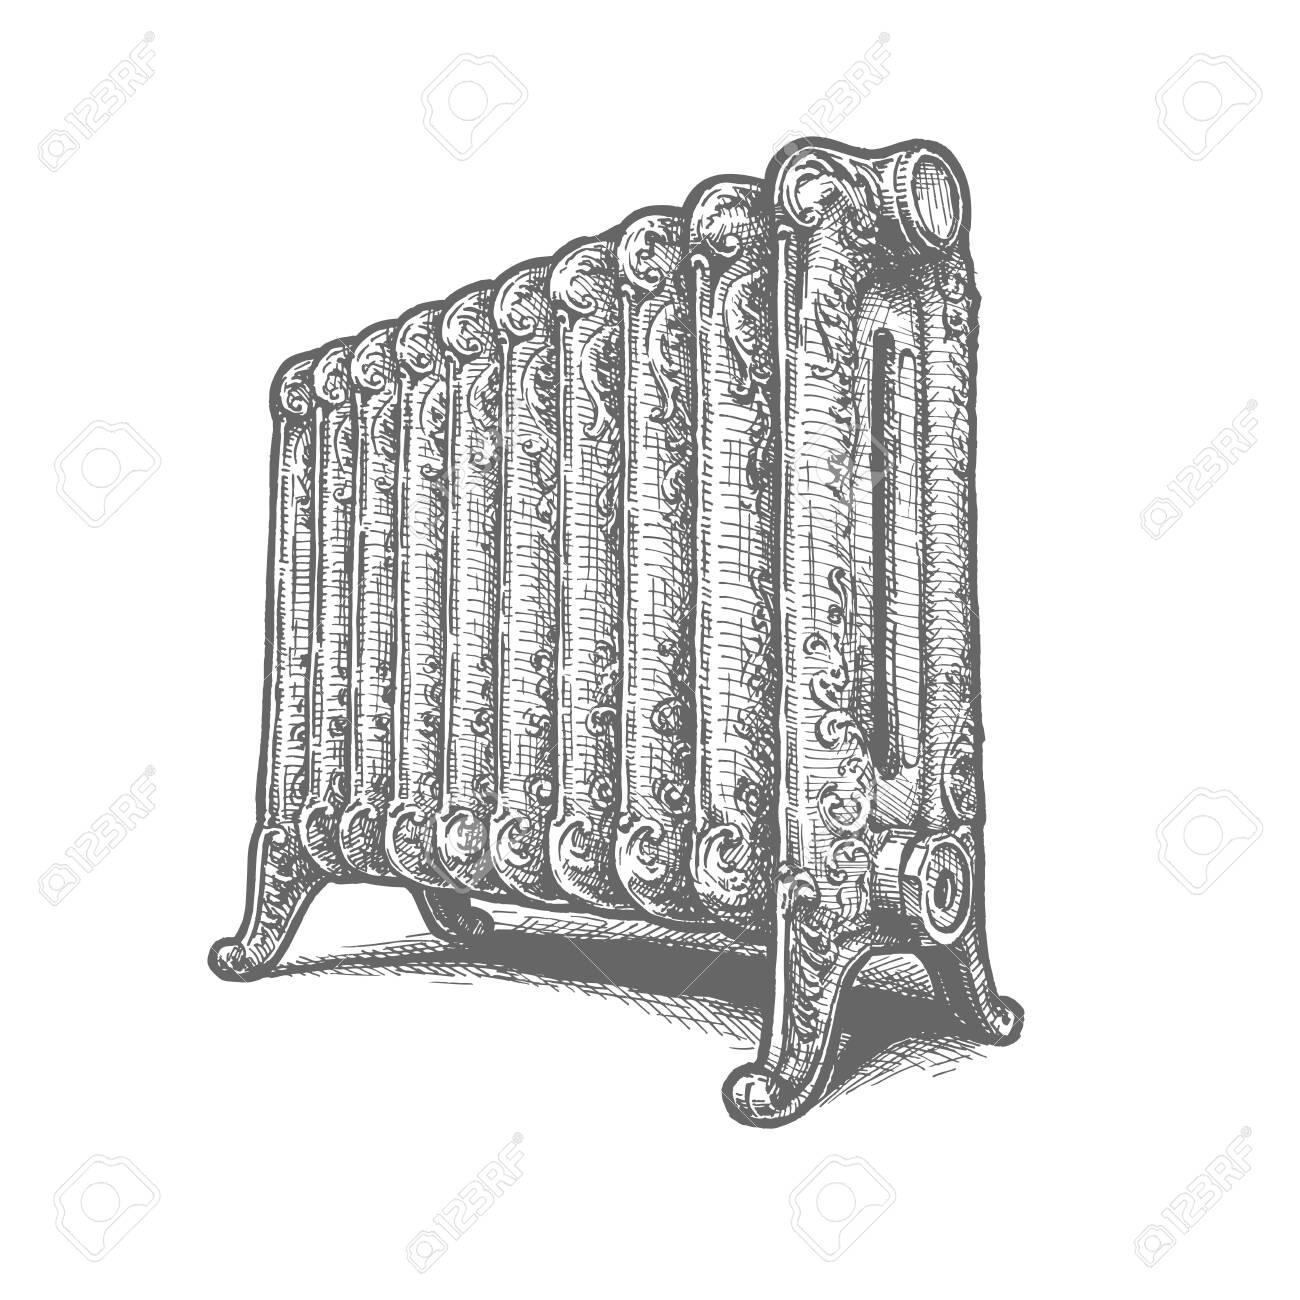 Vector Hand Drawn Illustration Of Old Cast Iron Radiators In Royalty Free Cliparts Vectors And Stock Illustration Image 138115672